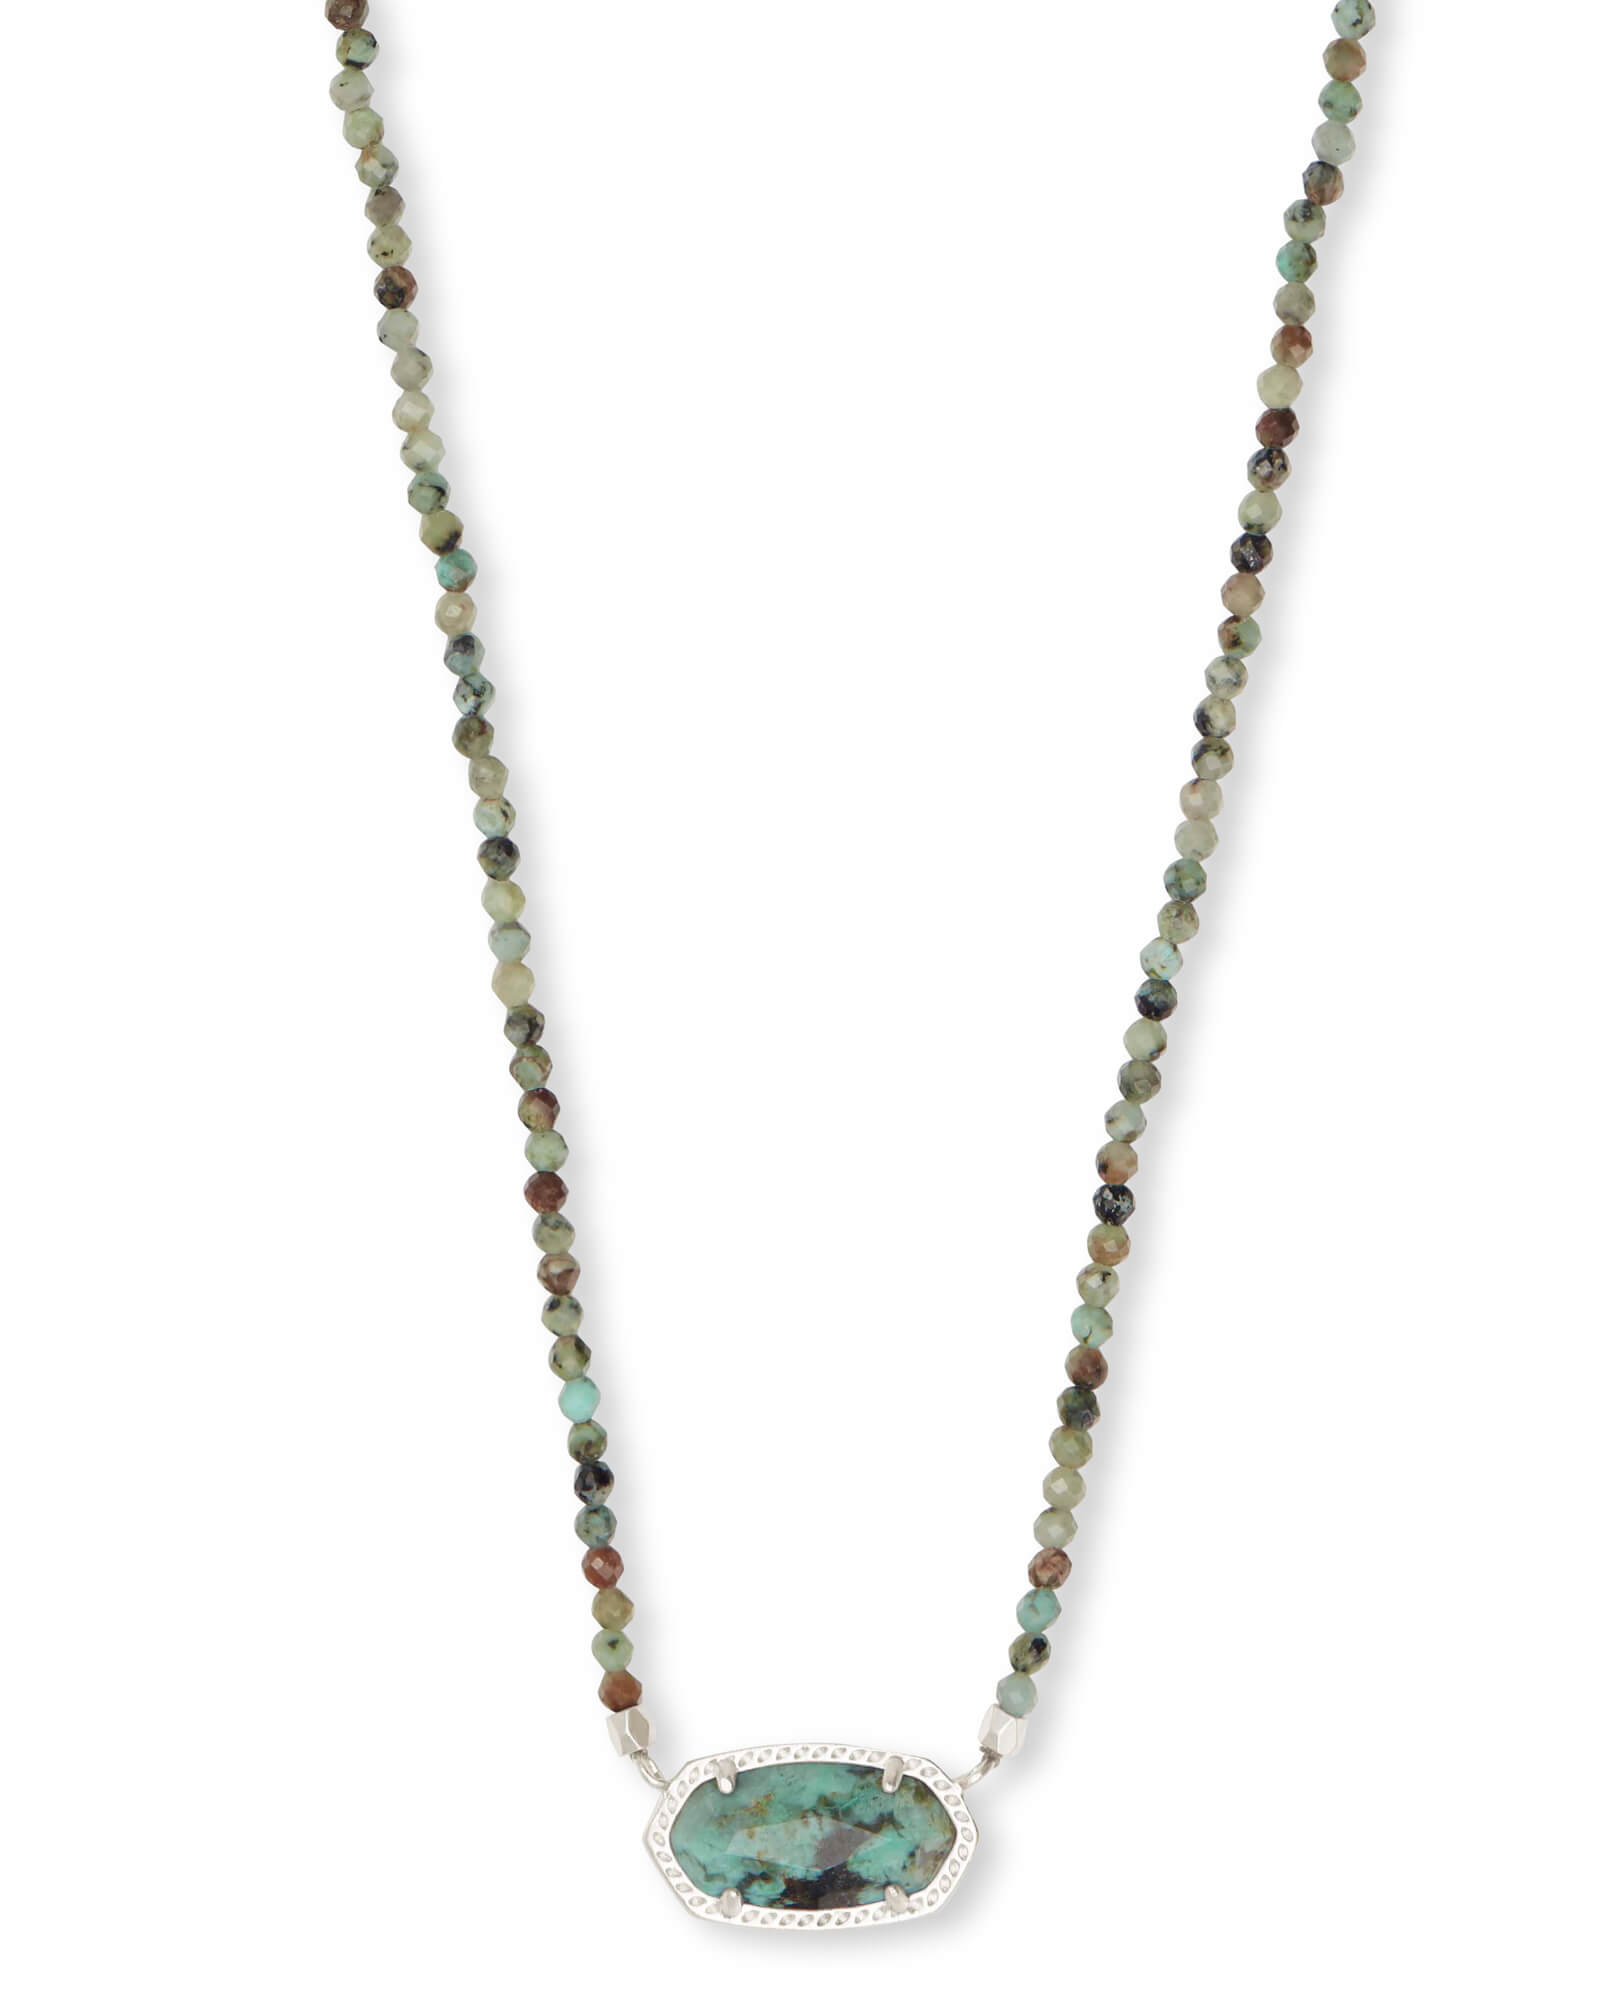 b33db9df953db8 Elisa Silver Beaded Pendant Necklace in African Turquoise | Kendra Scott